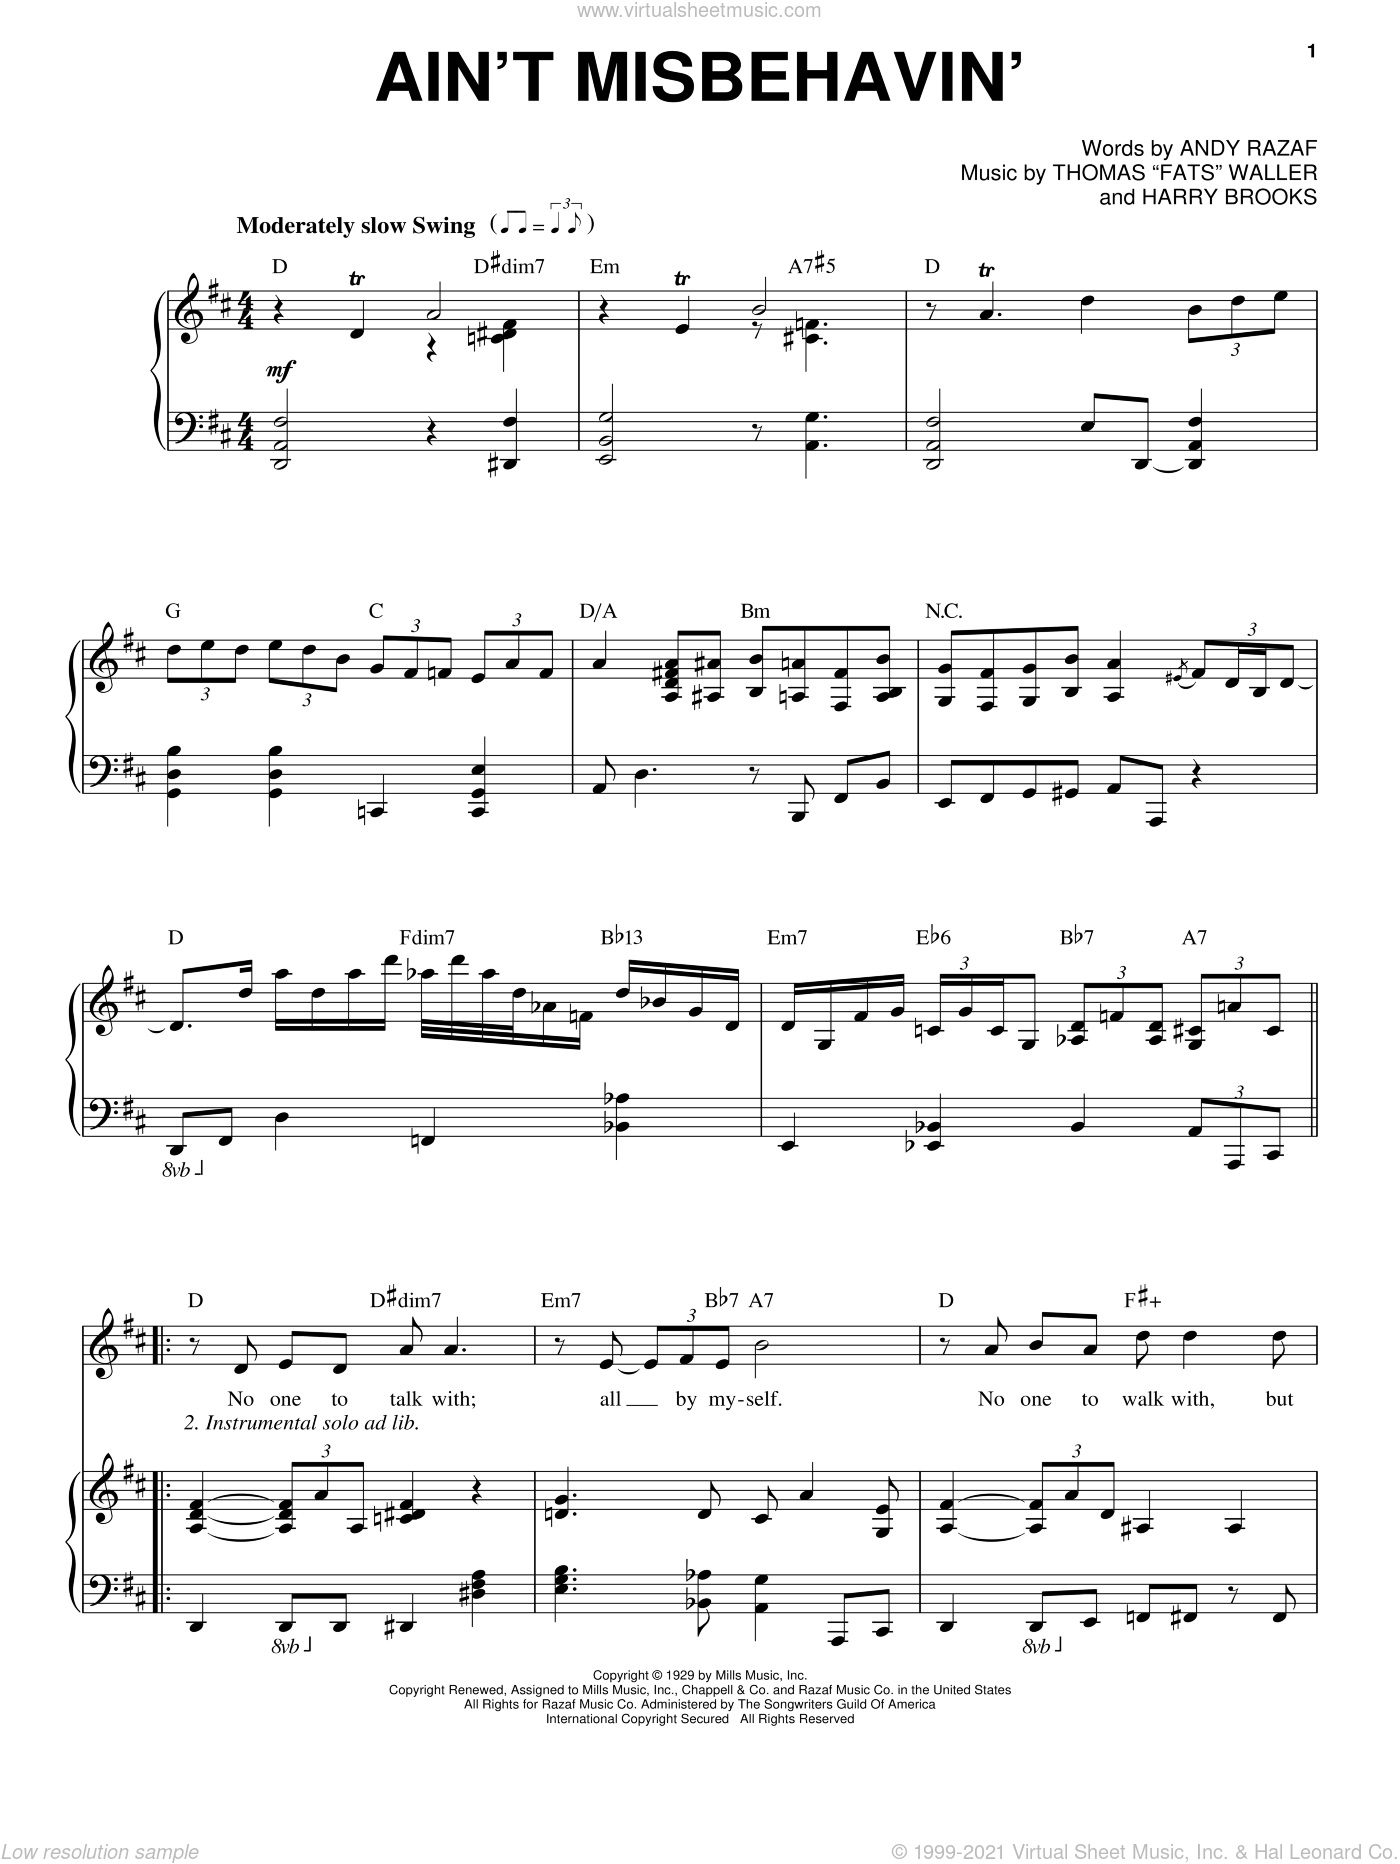 Ain't Misbehavin' sheet music for voice and piano by Steve Tyrell, Thomas Waller, Andy Razaf, Thomas Waller and Harry Brooks, intermediate skill level